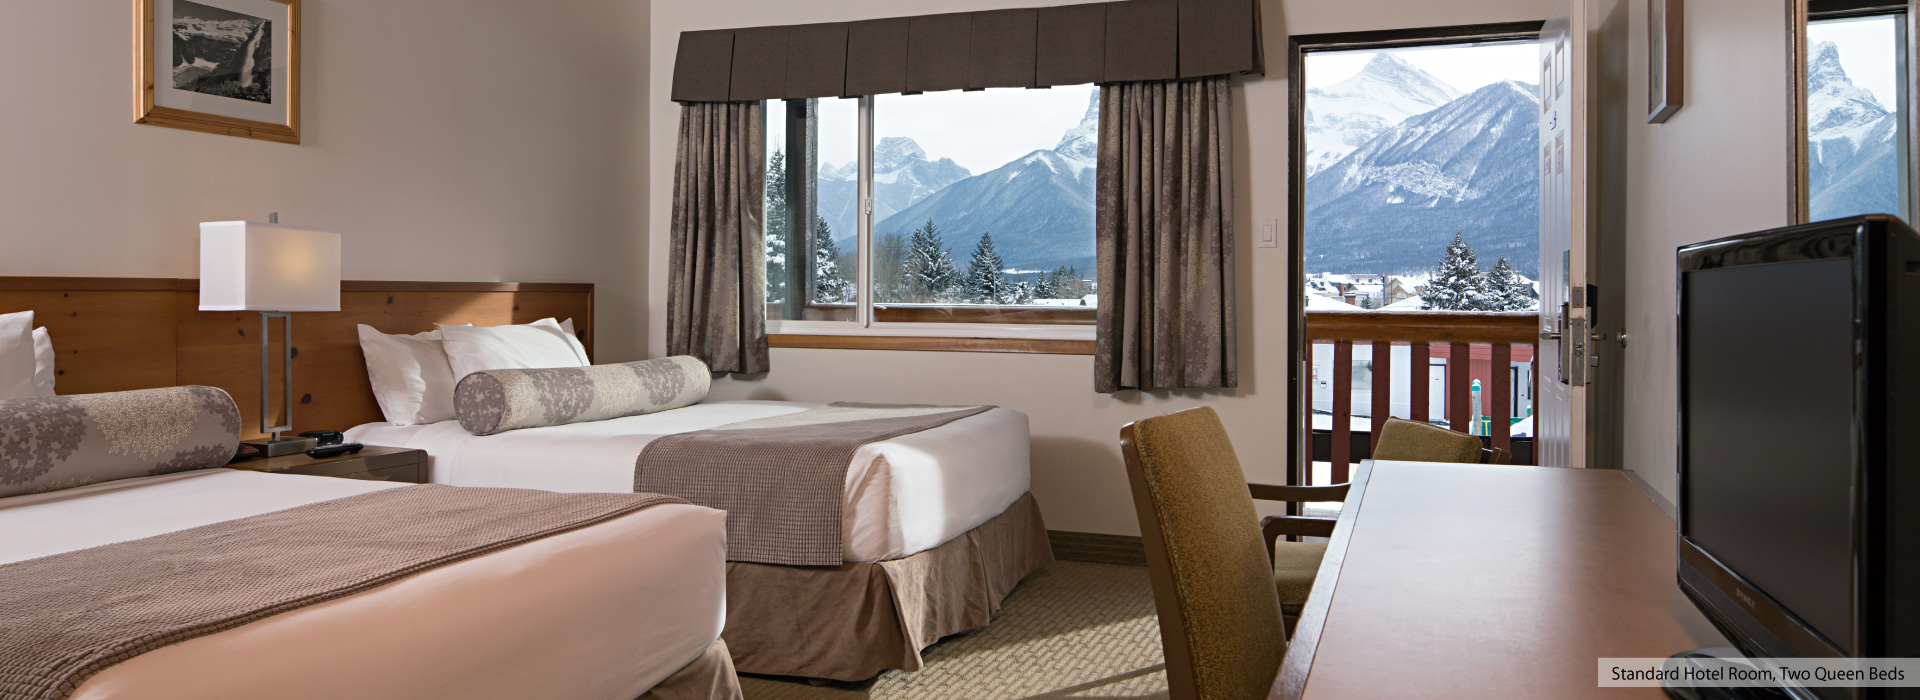 Rocky Mountain Ski Lodge Rooms